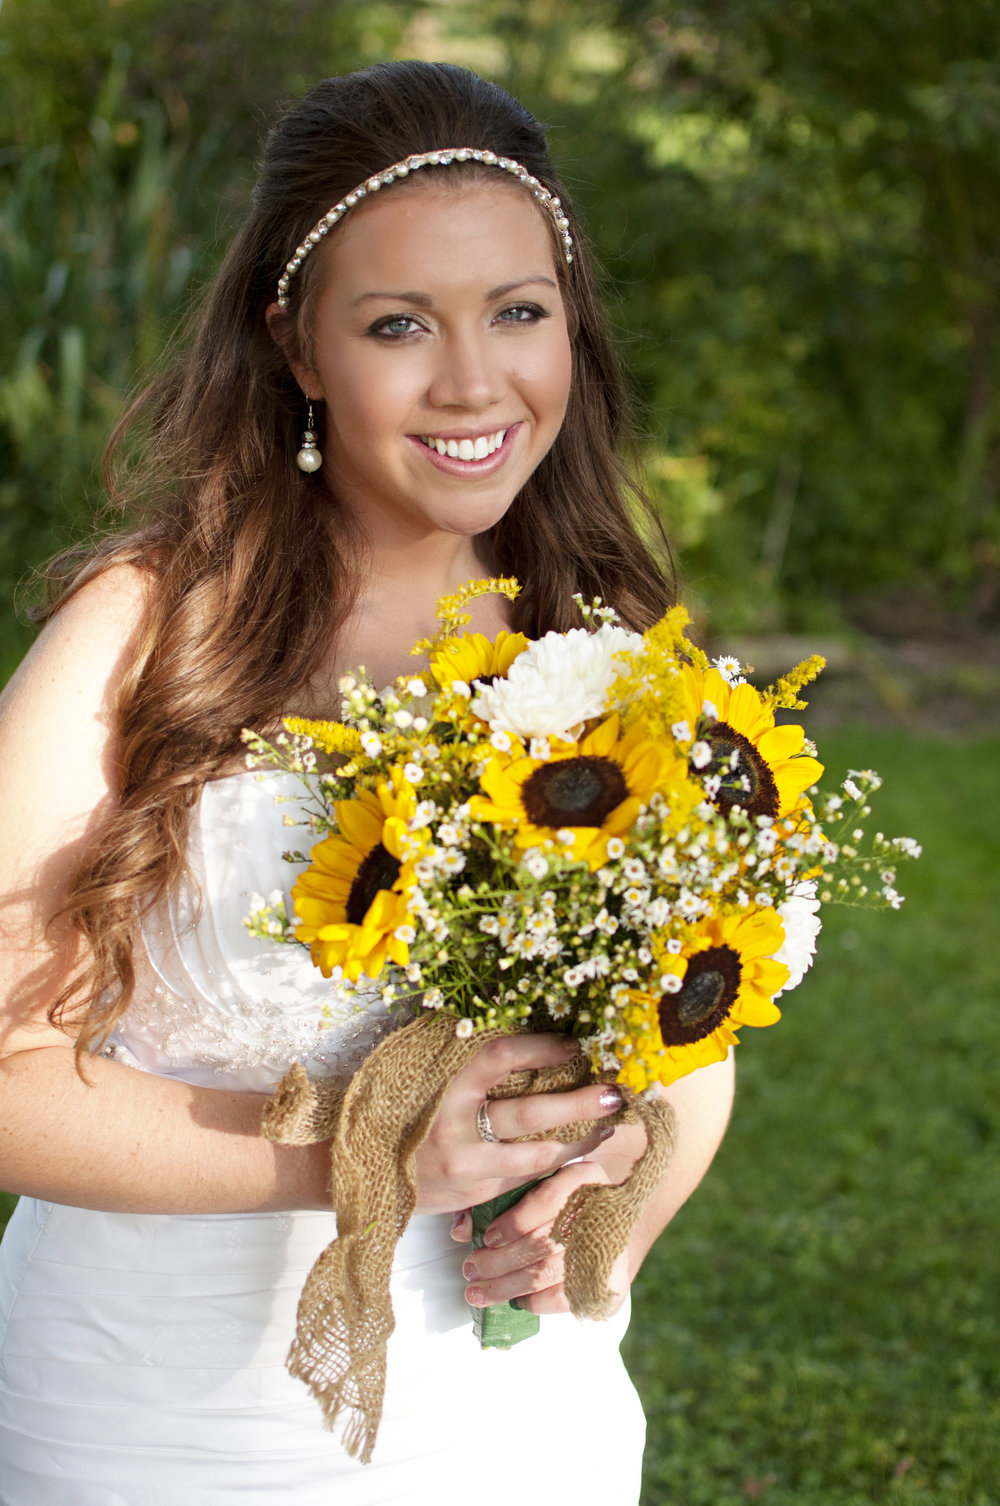 bride with half up hairdo and beaded headband holding sunflower wedding bouquet